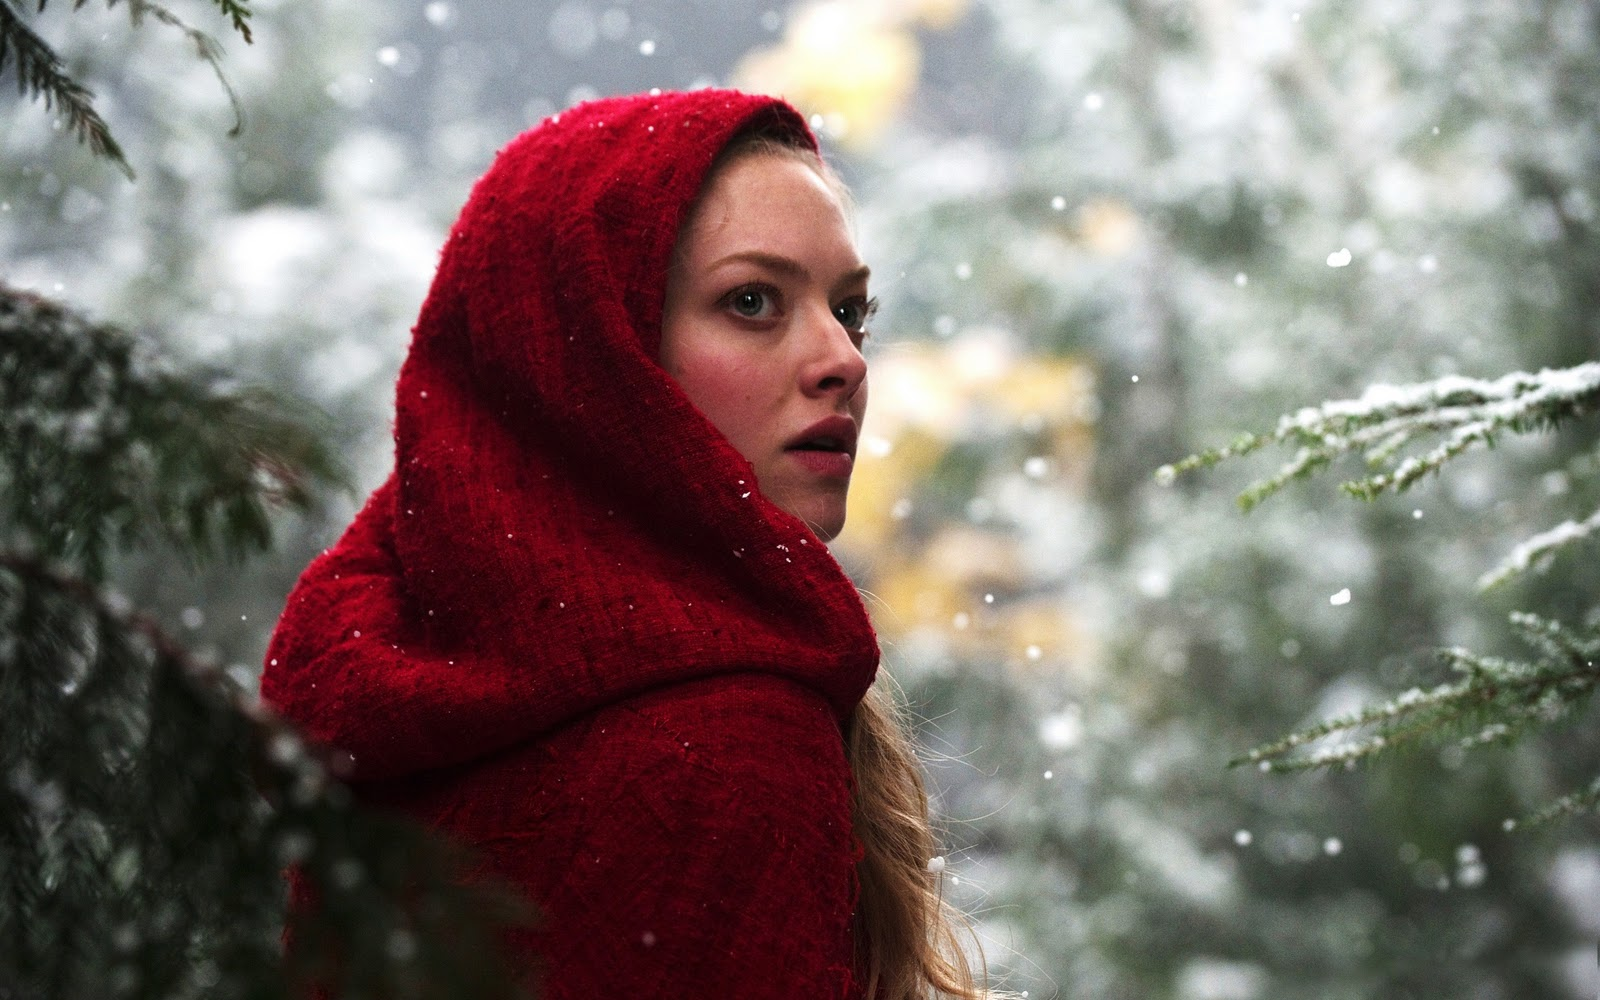 http://3.bp.blogspot.com/_g4hpZkL3W6M/TThD76PTD_I/AAAAAAAABOg/Q5a1AuB4WuA/s1600/amanda_seyfried_in_red_riding_hood-wide.jpg